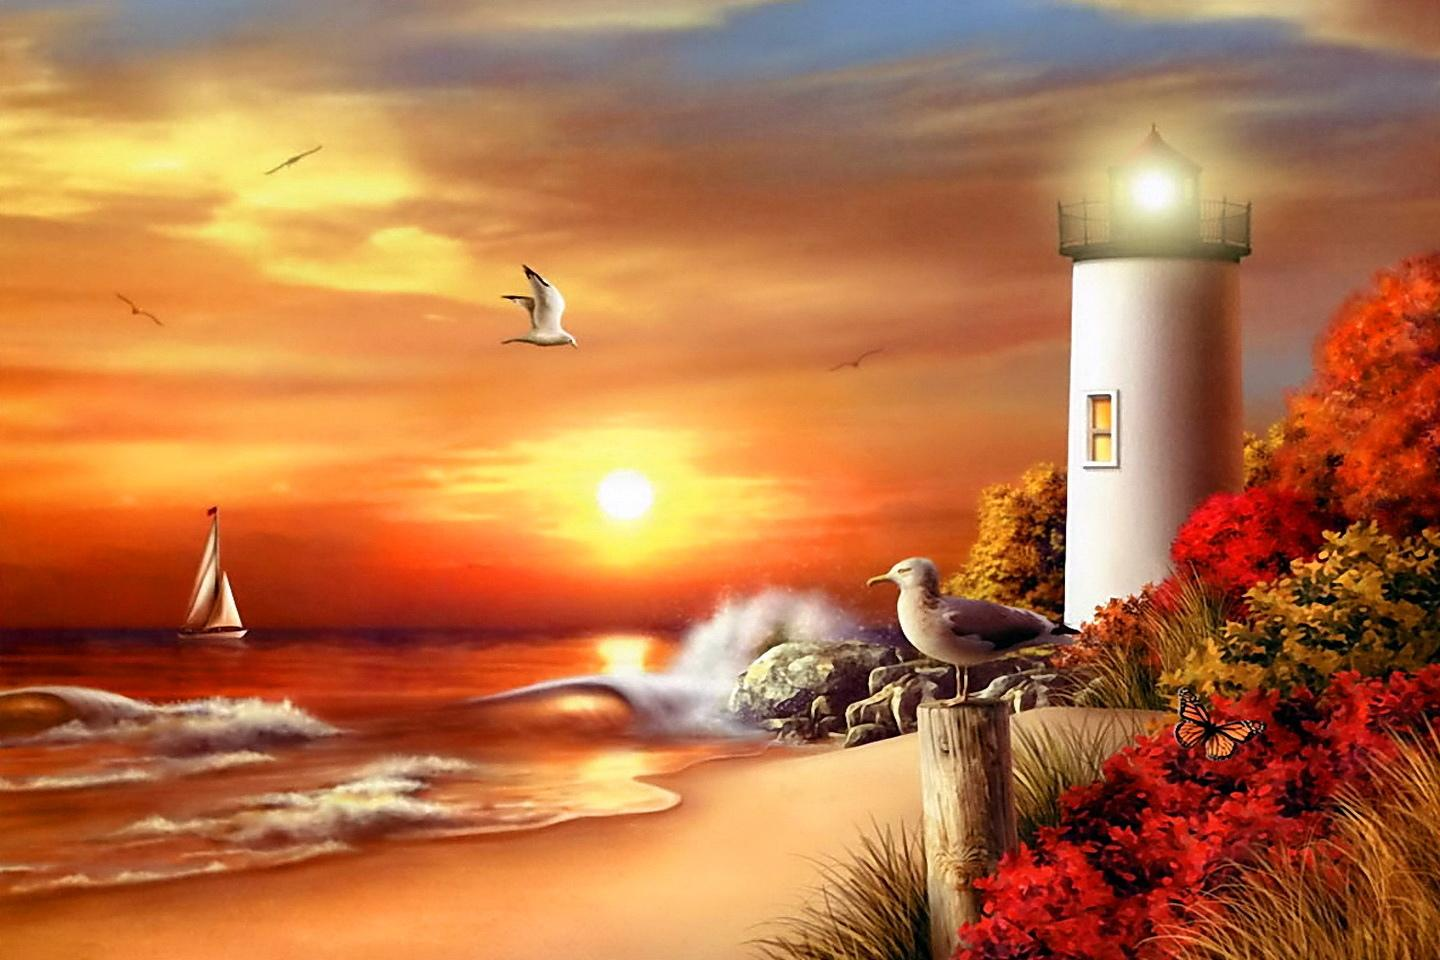 Lighthouse Artistic wallpapers HD quality